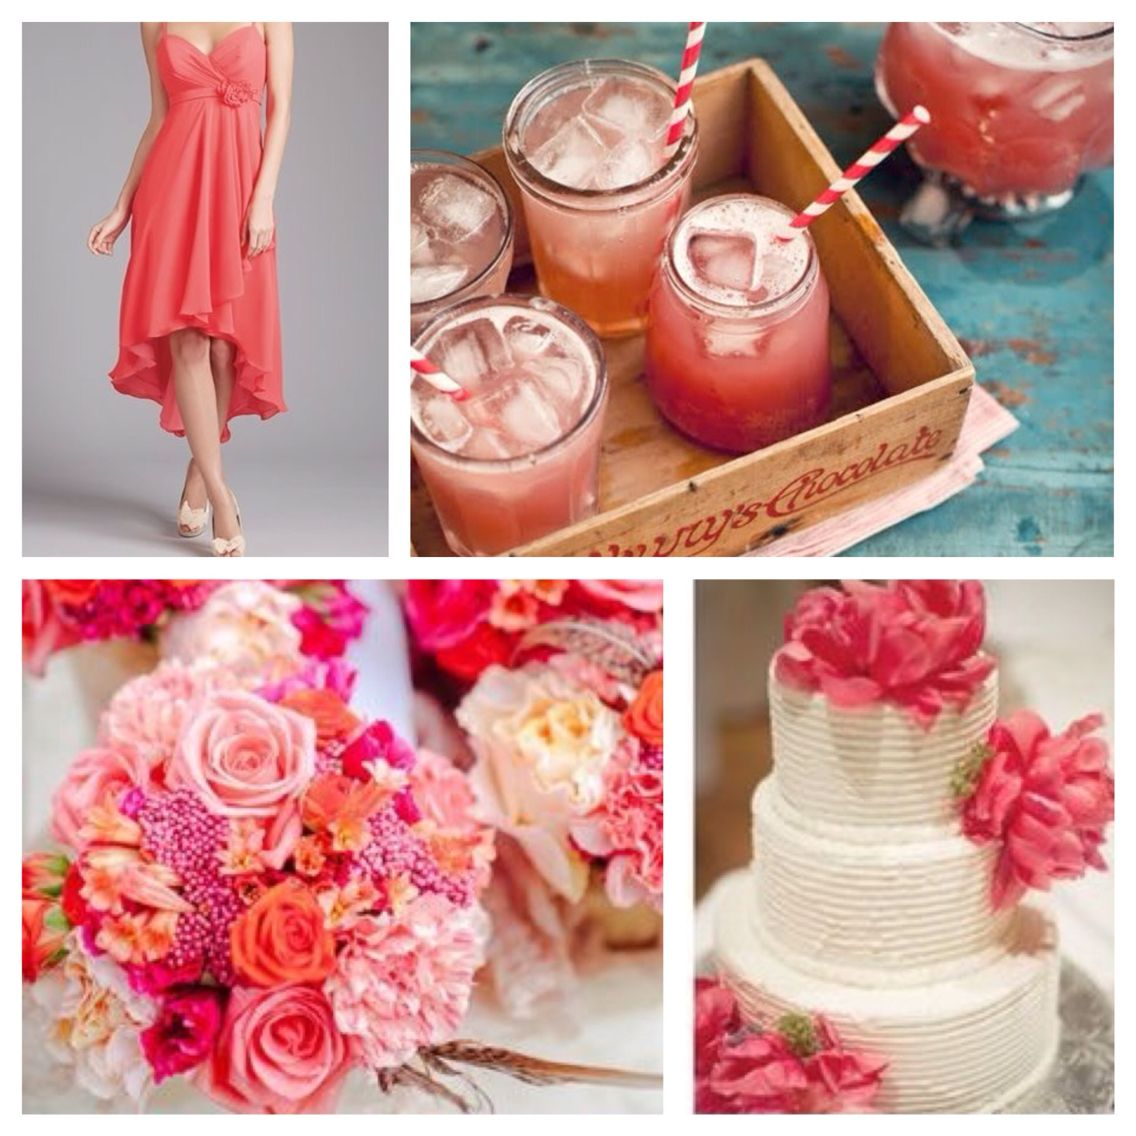 Freshen up your summer wedding with this juicy hue: Watermelon! www.cakeandbubbly.com @cakeandbubbly